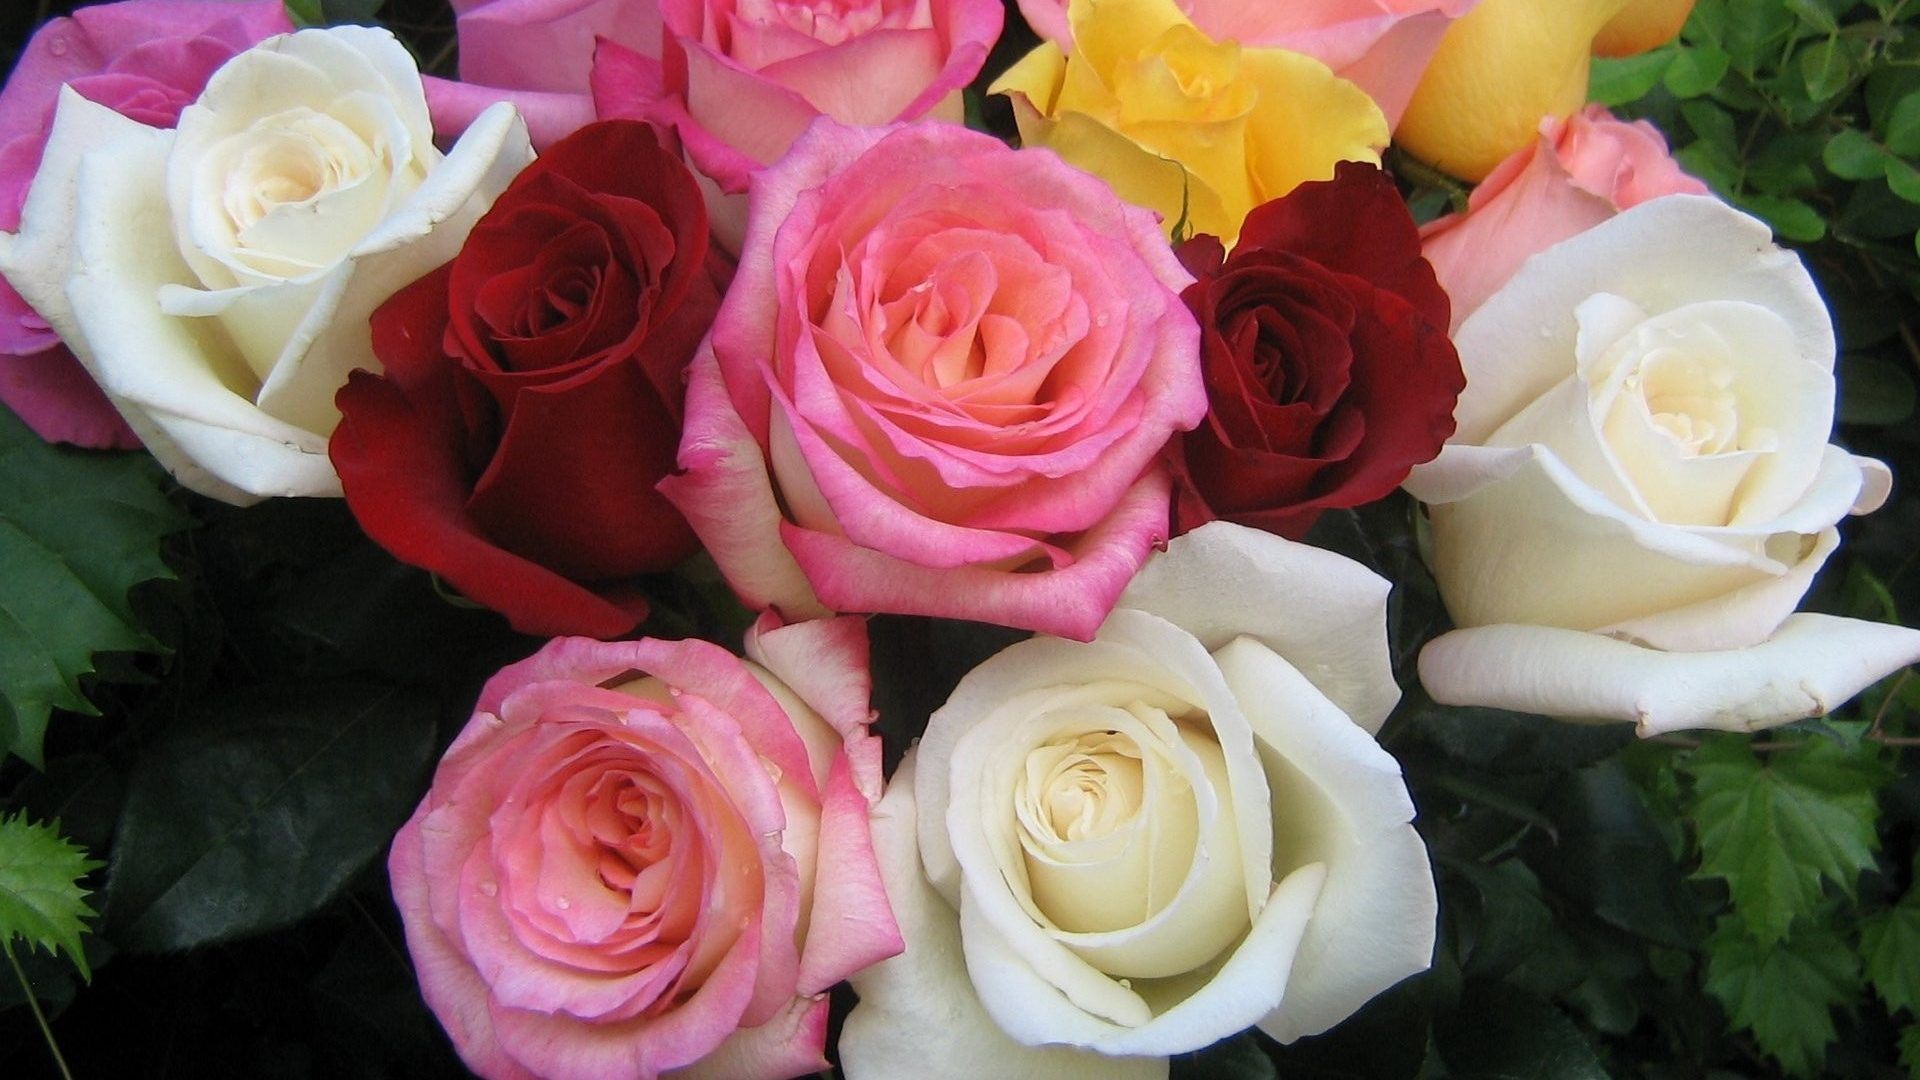 10 roses flowers - Feenix- Food & Cake Delivery Service in Trichy